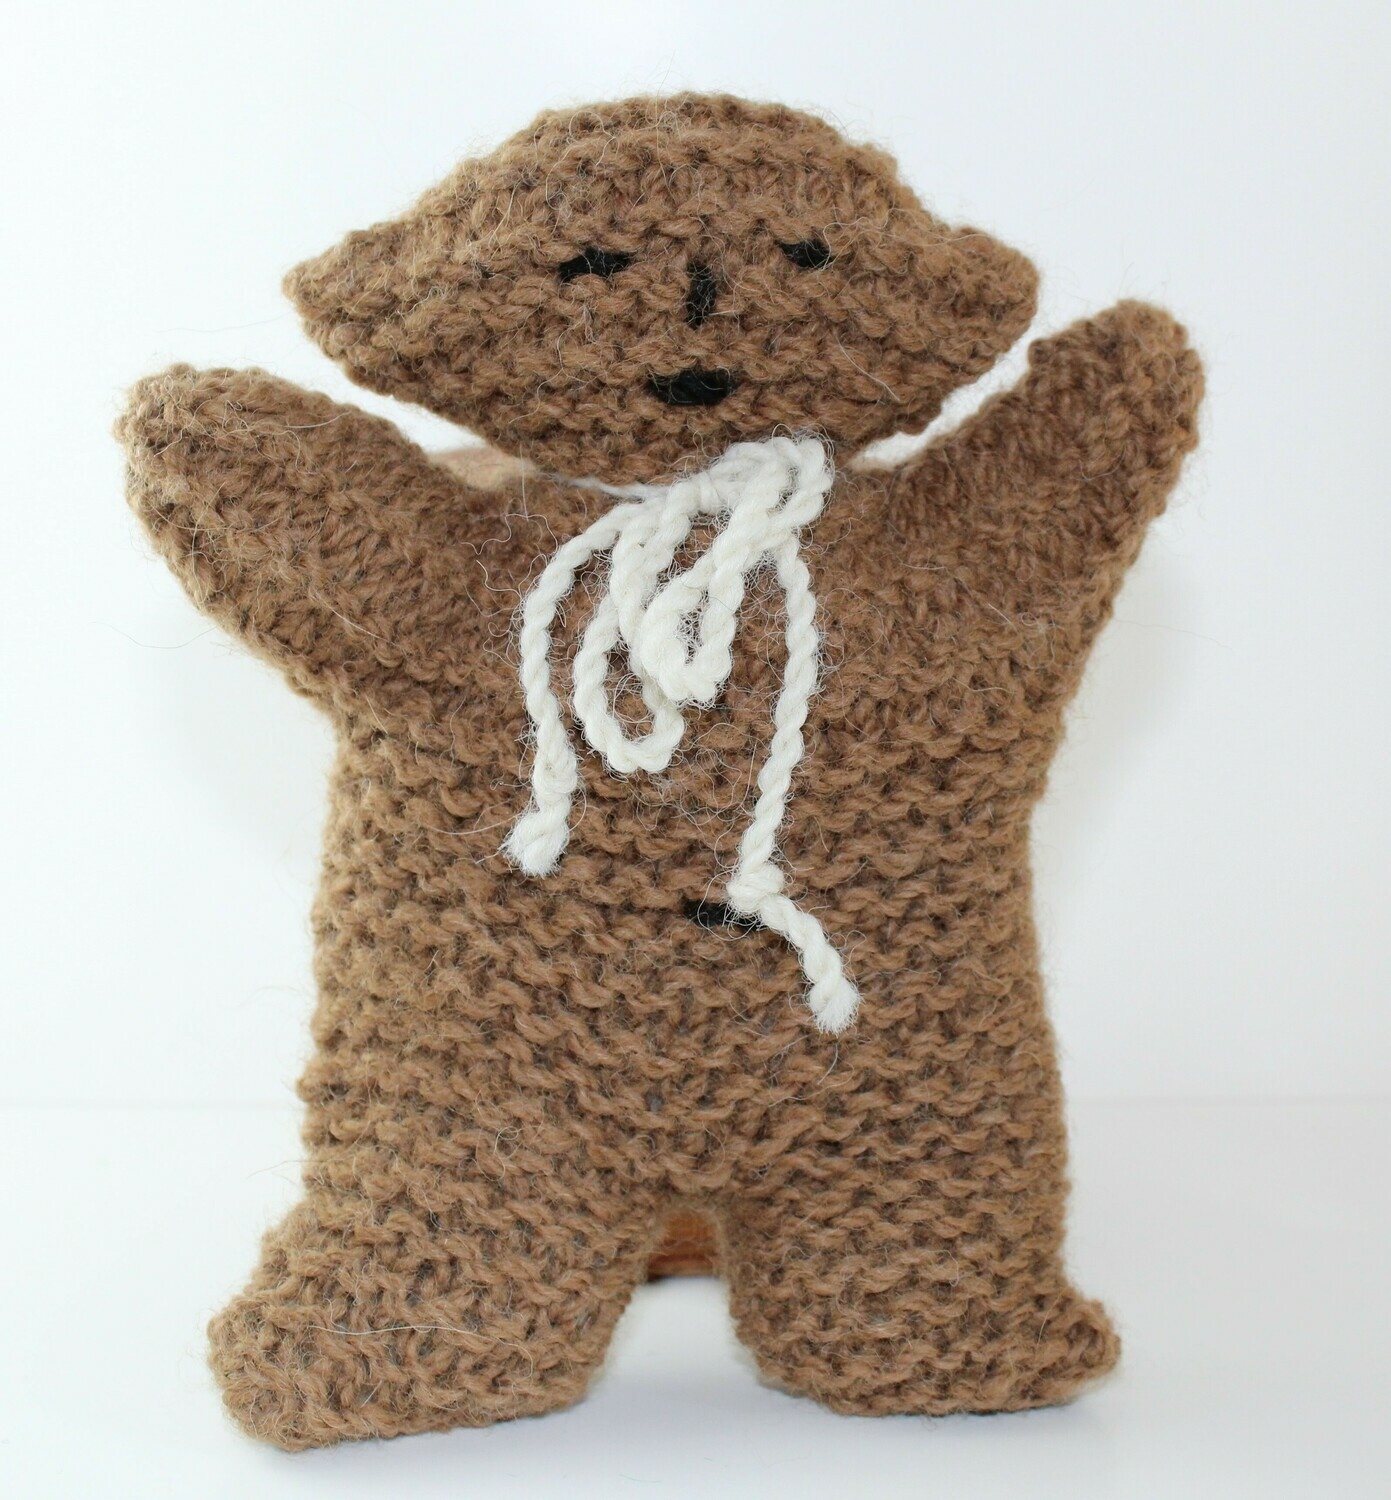 Knitted Teddy Bears 7